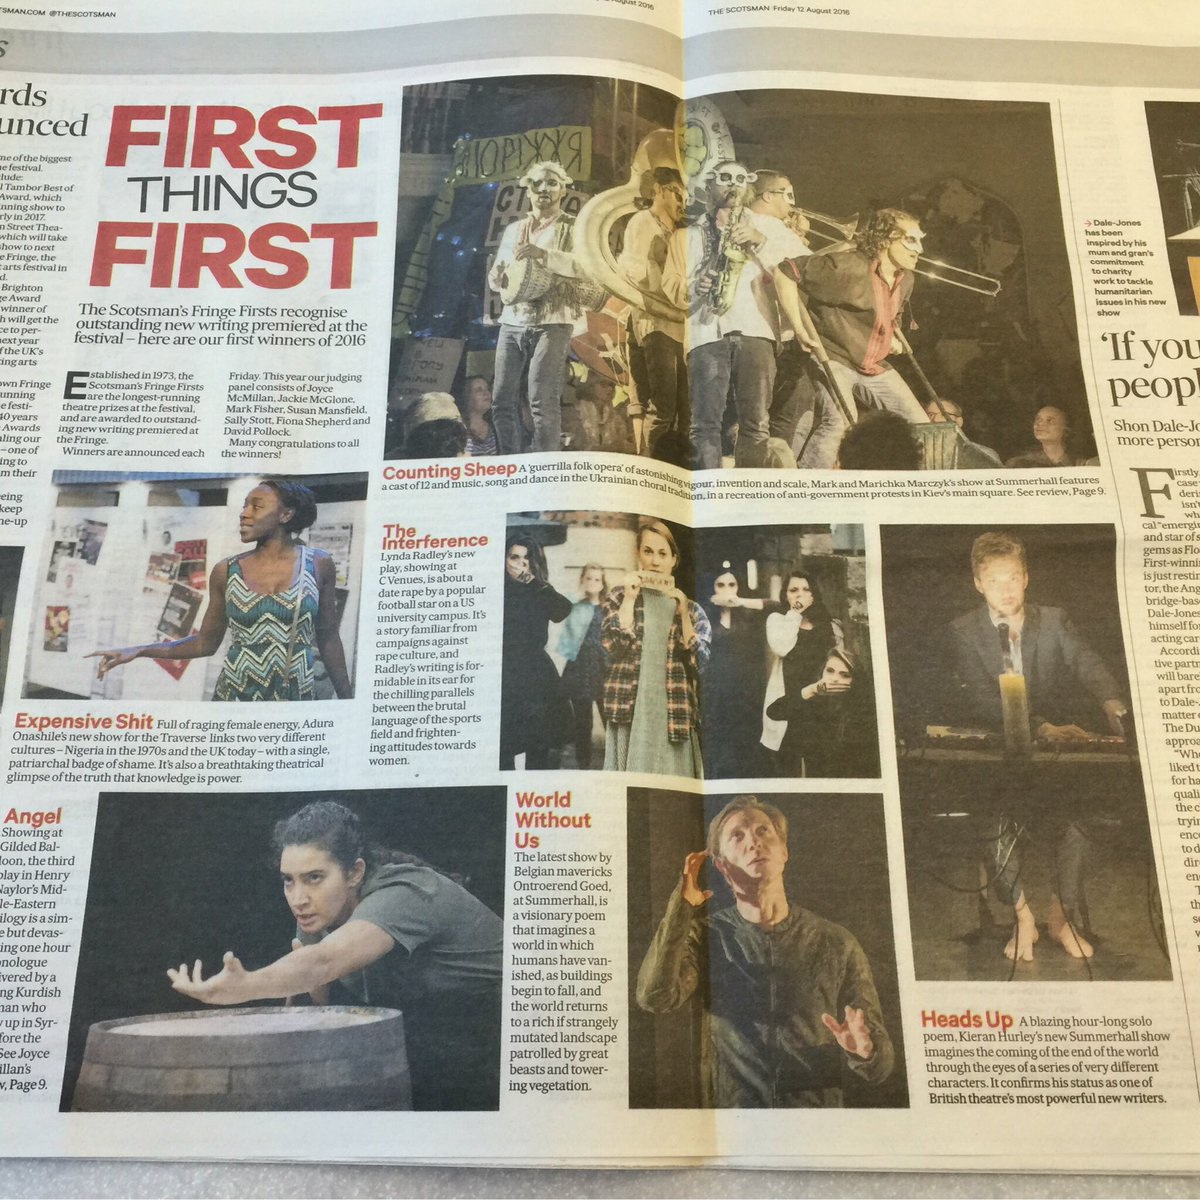 Three of our brilliant shows have won Fringe Firsts! Congrats to Heads Up, Counting Sheep and World Without Us. https://t.co/wlUEcYGPAI